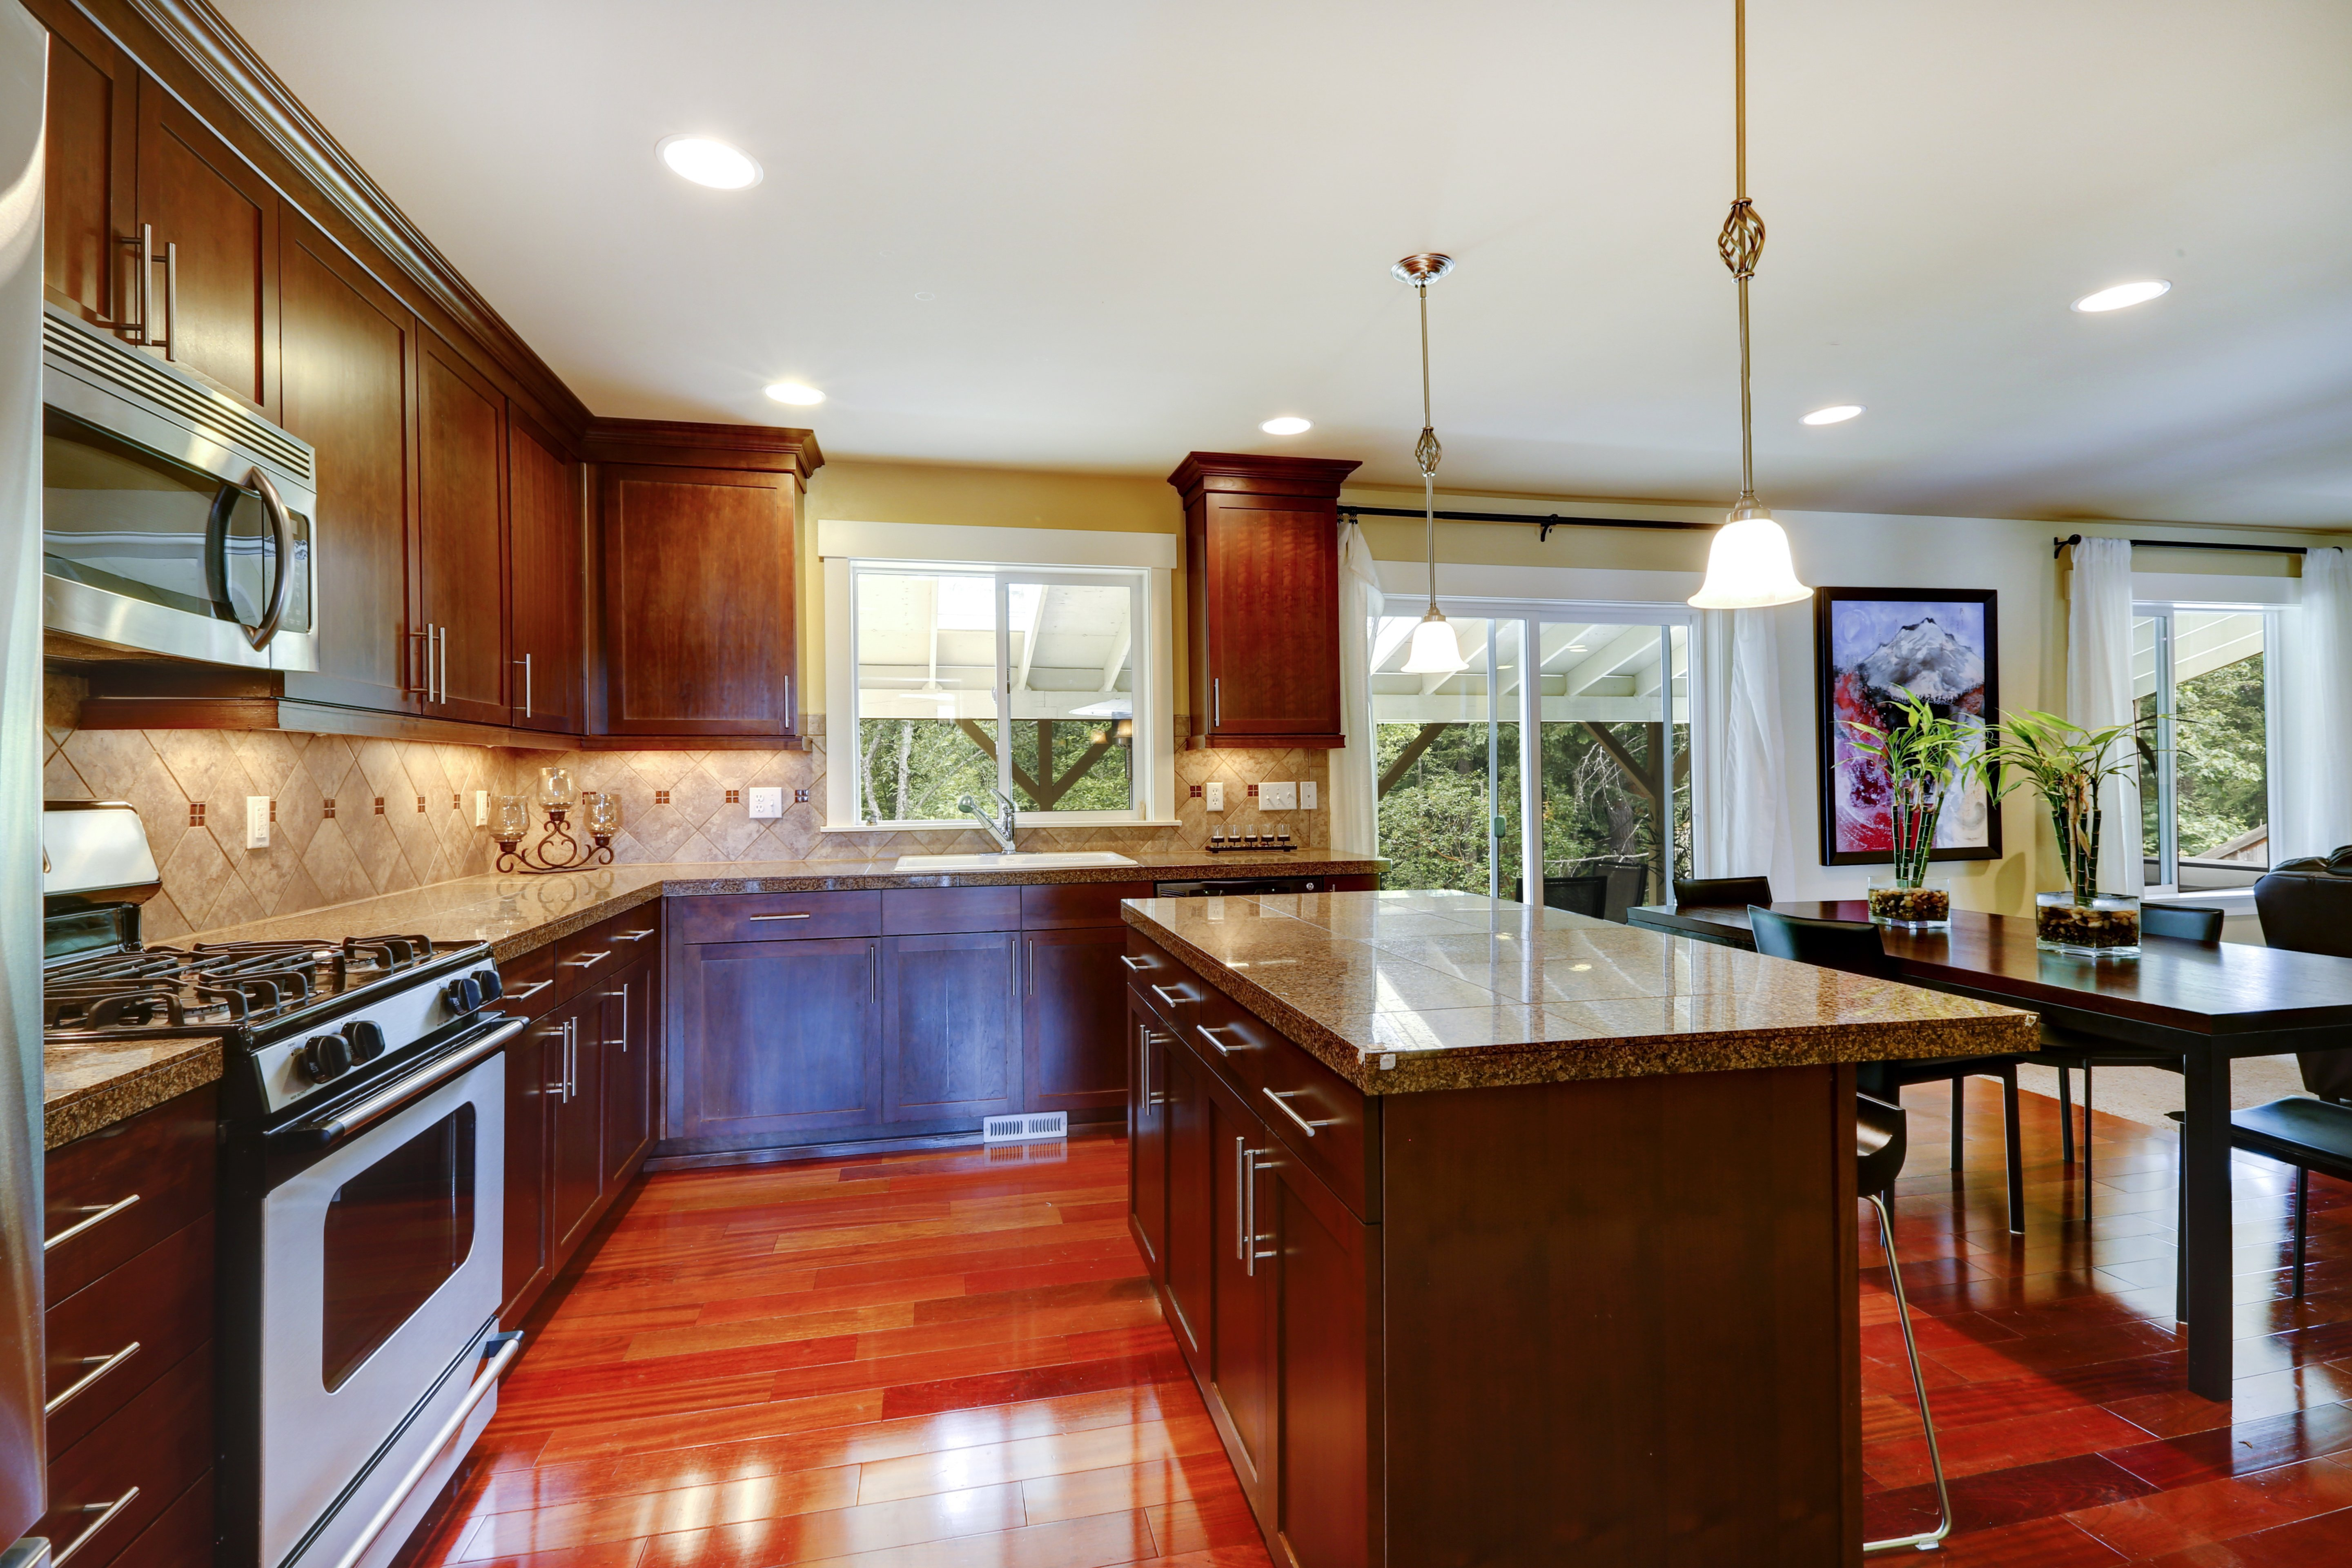 Kitchen Countertops Project in Marion, IA